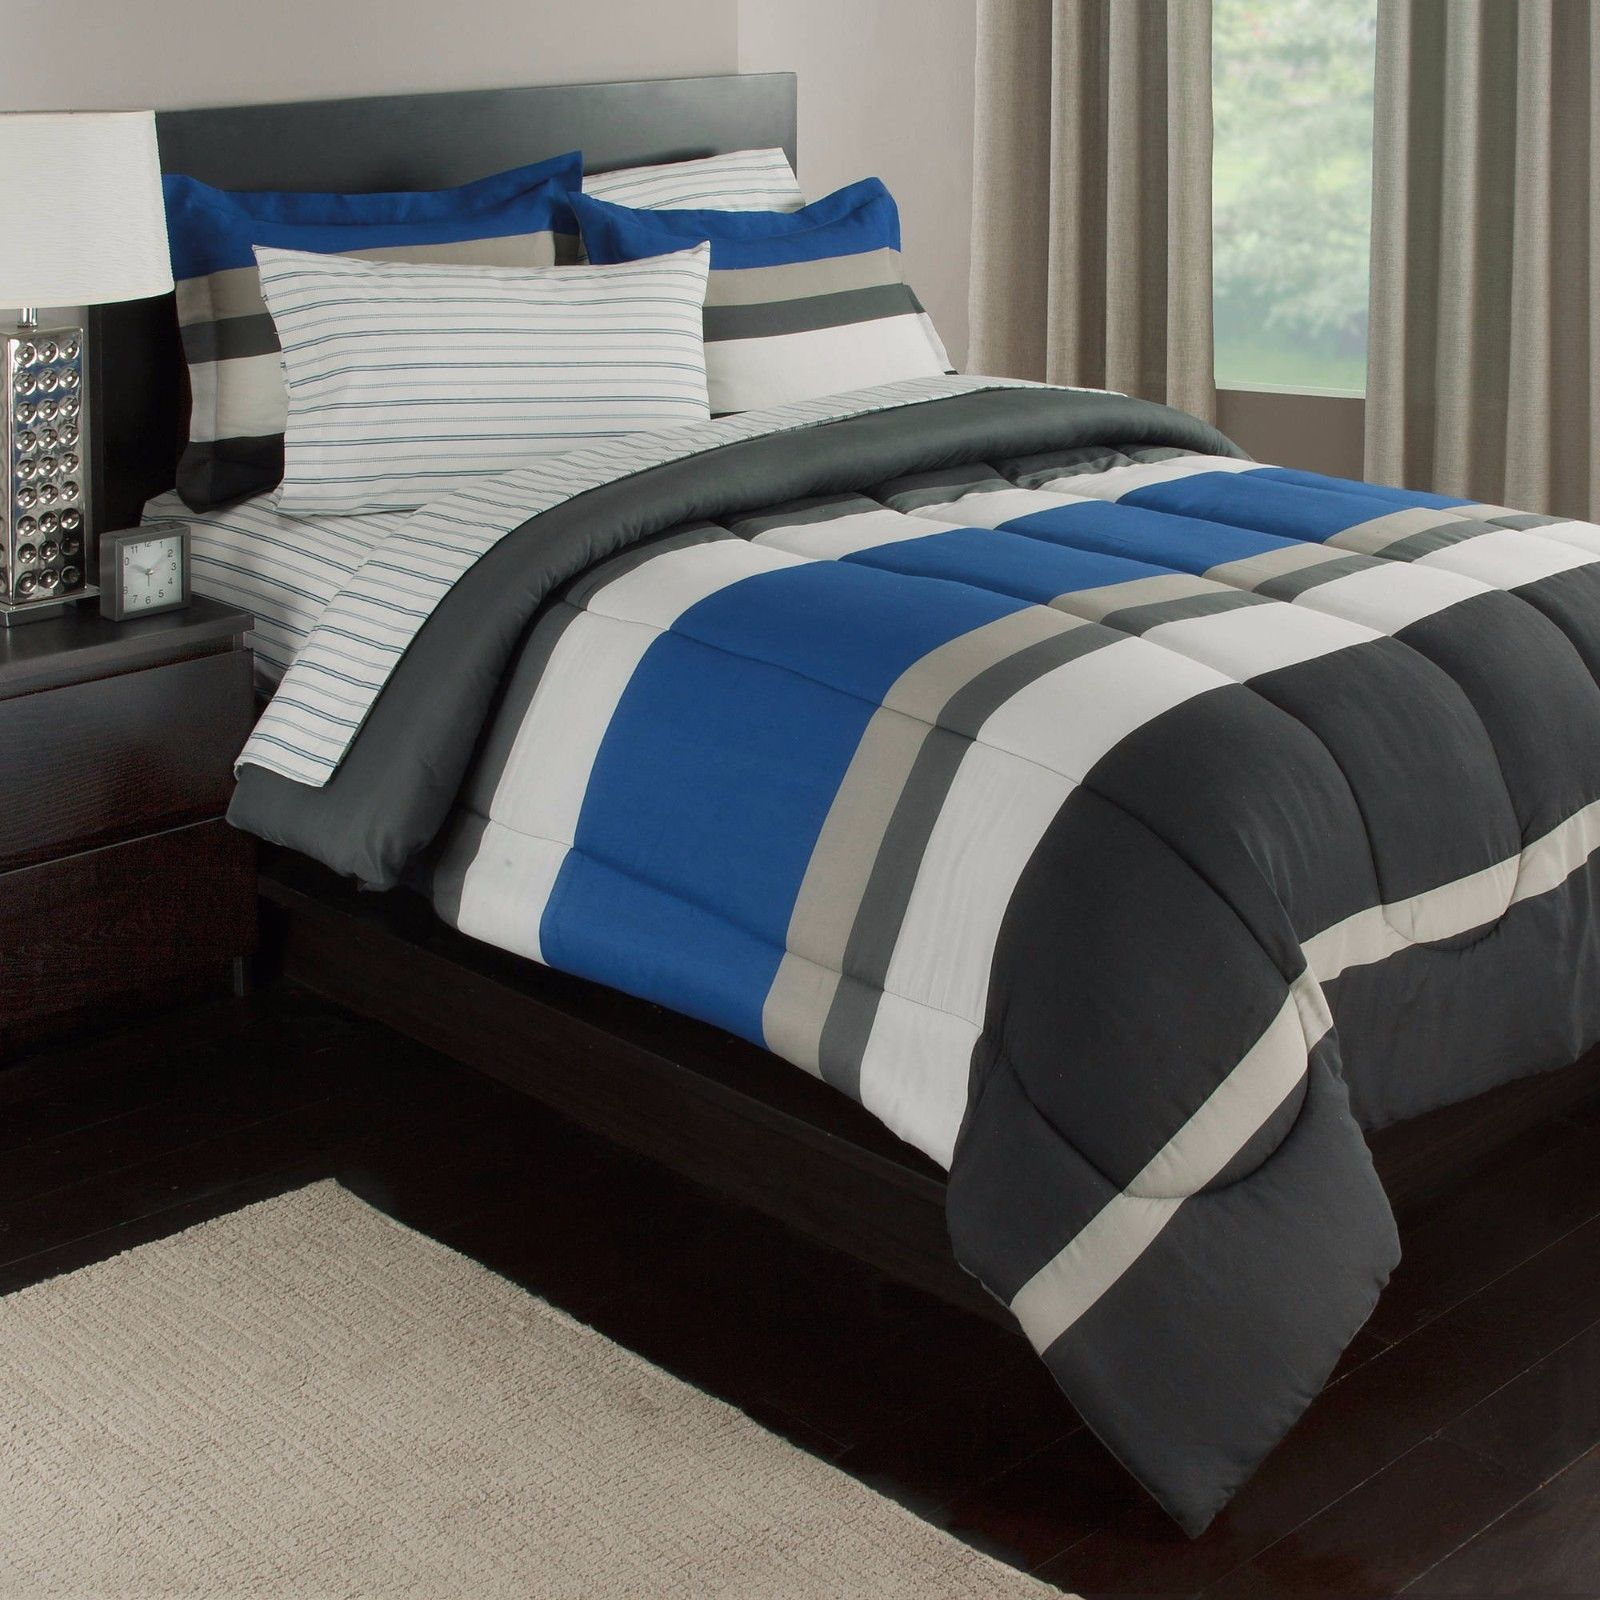 blue white gray stripes boys teen twin comforter set 5 piece bed in a bag